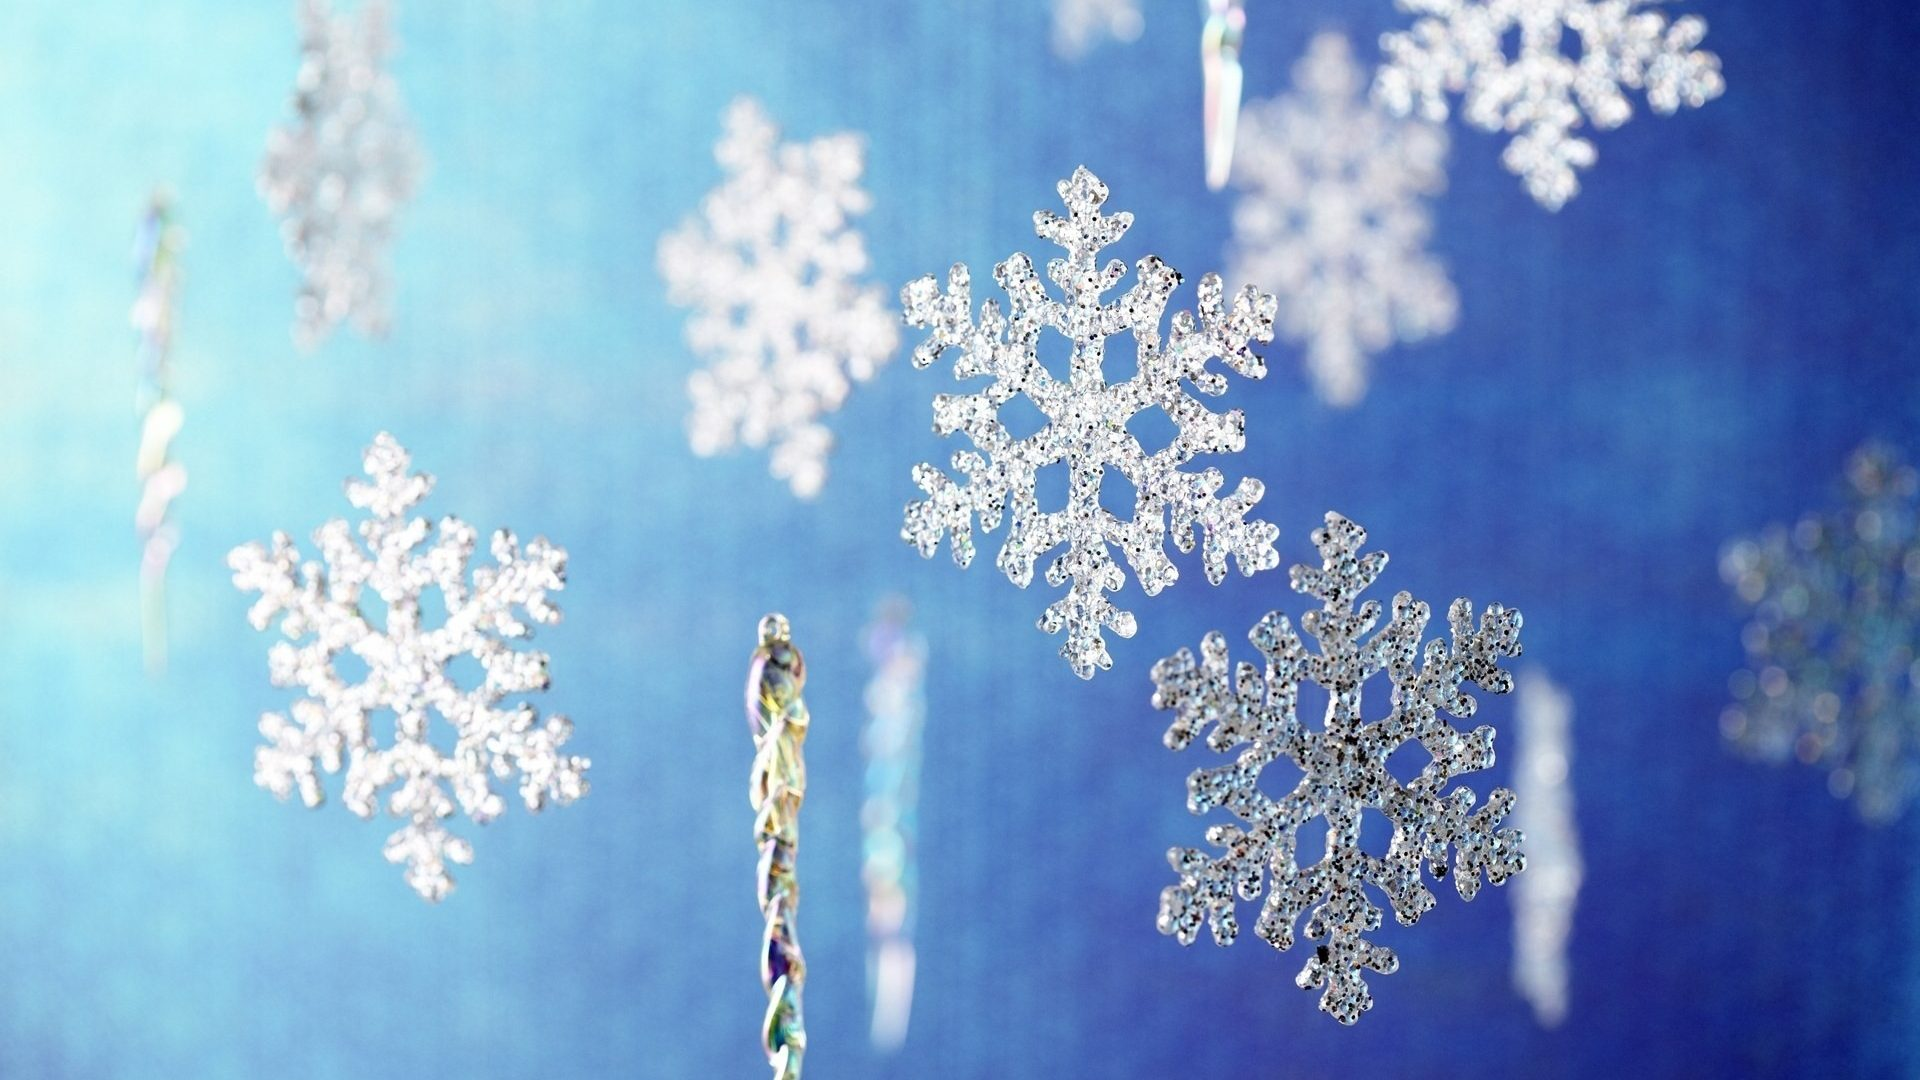 winter holiday pretty seasons festival snowflakes new bright 1920x1080